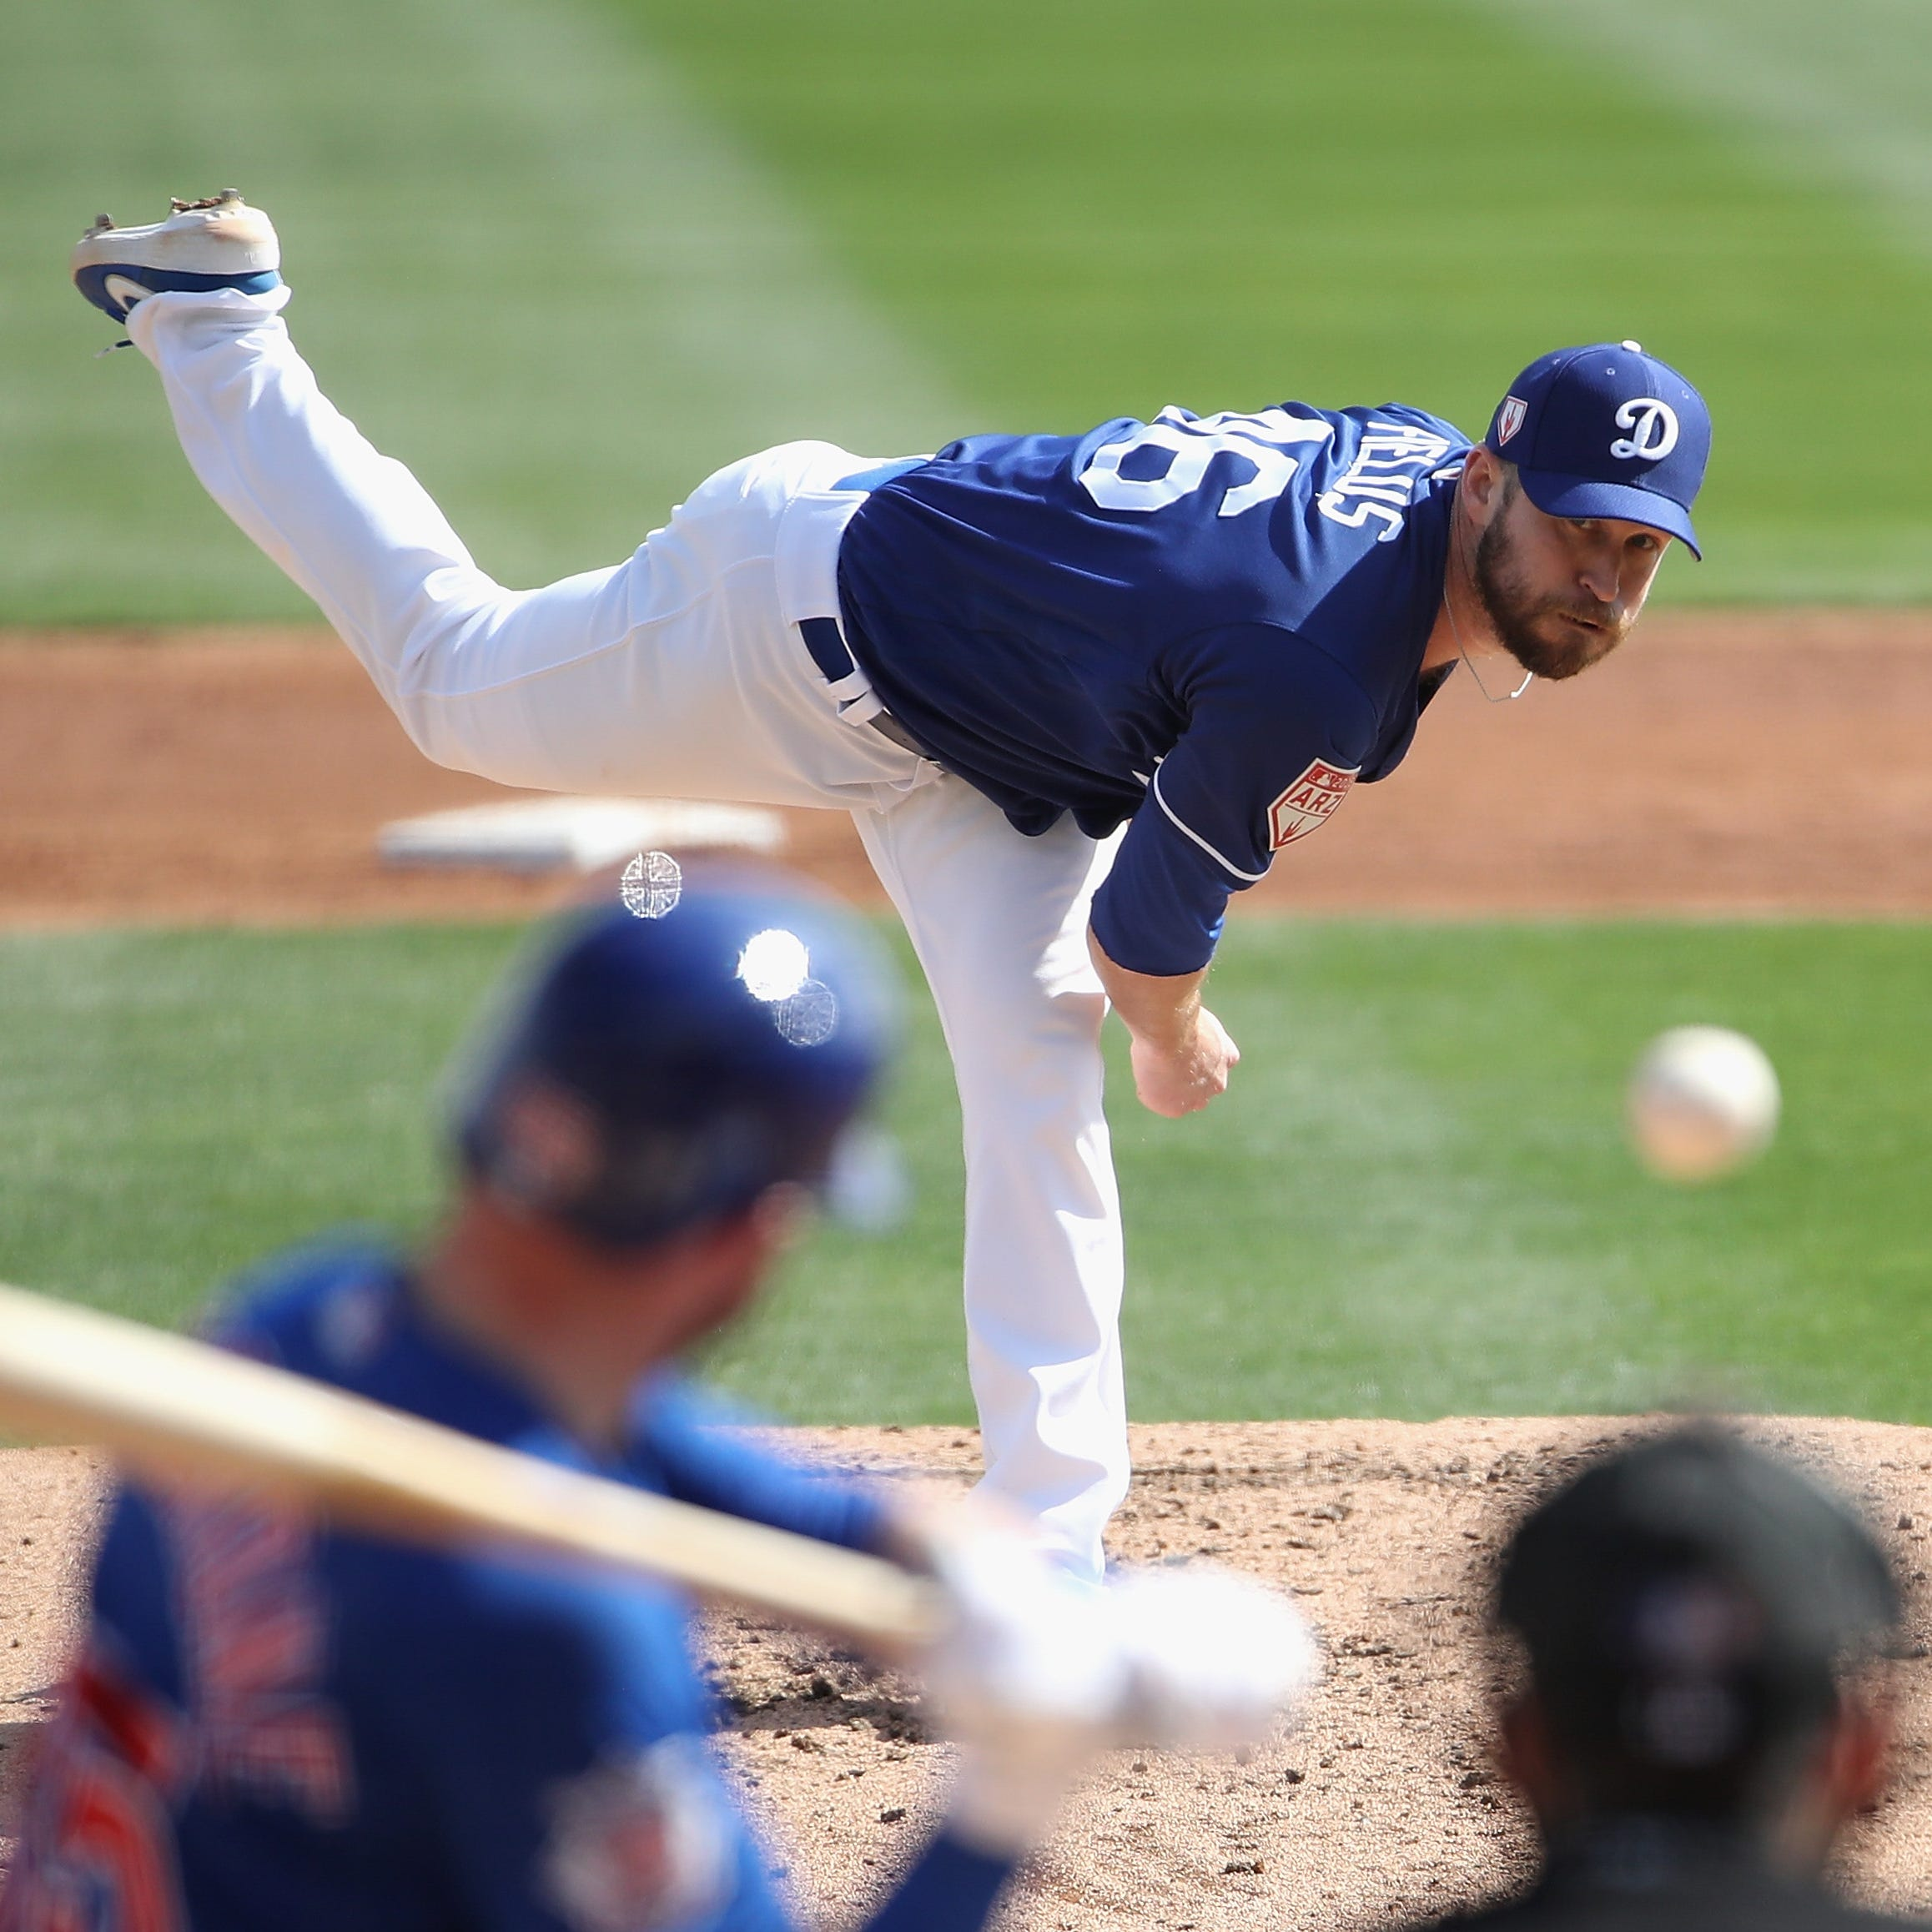 Brewers sign reliever Josh Fields, released by Dodgers, and will send him to AAA San Antonio